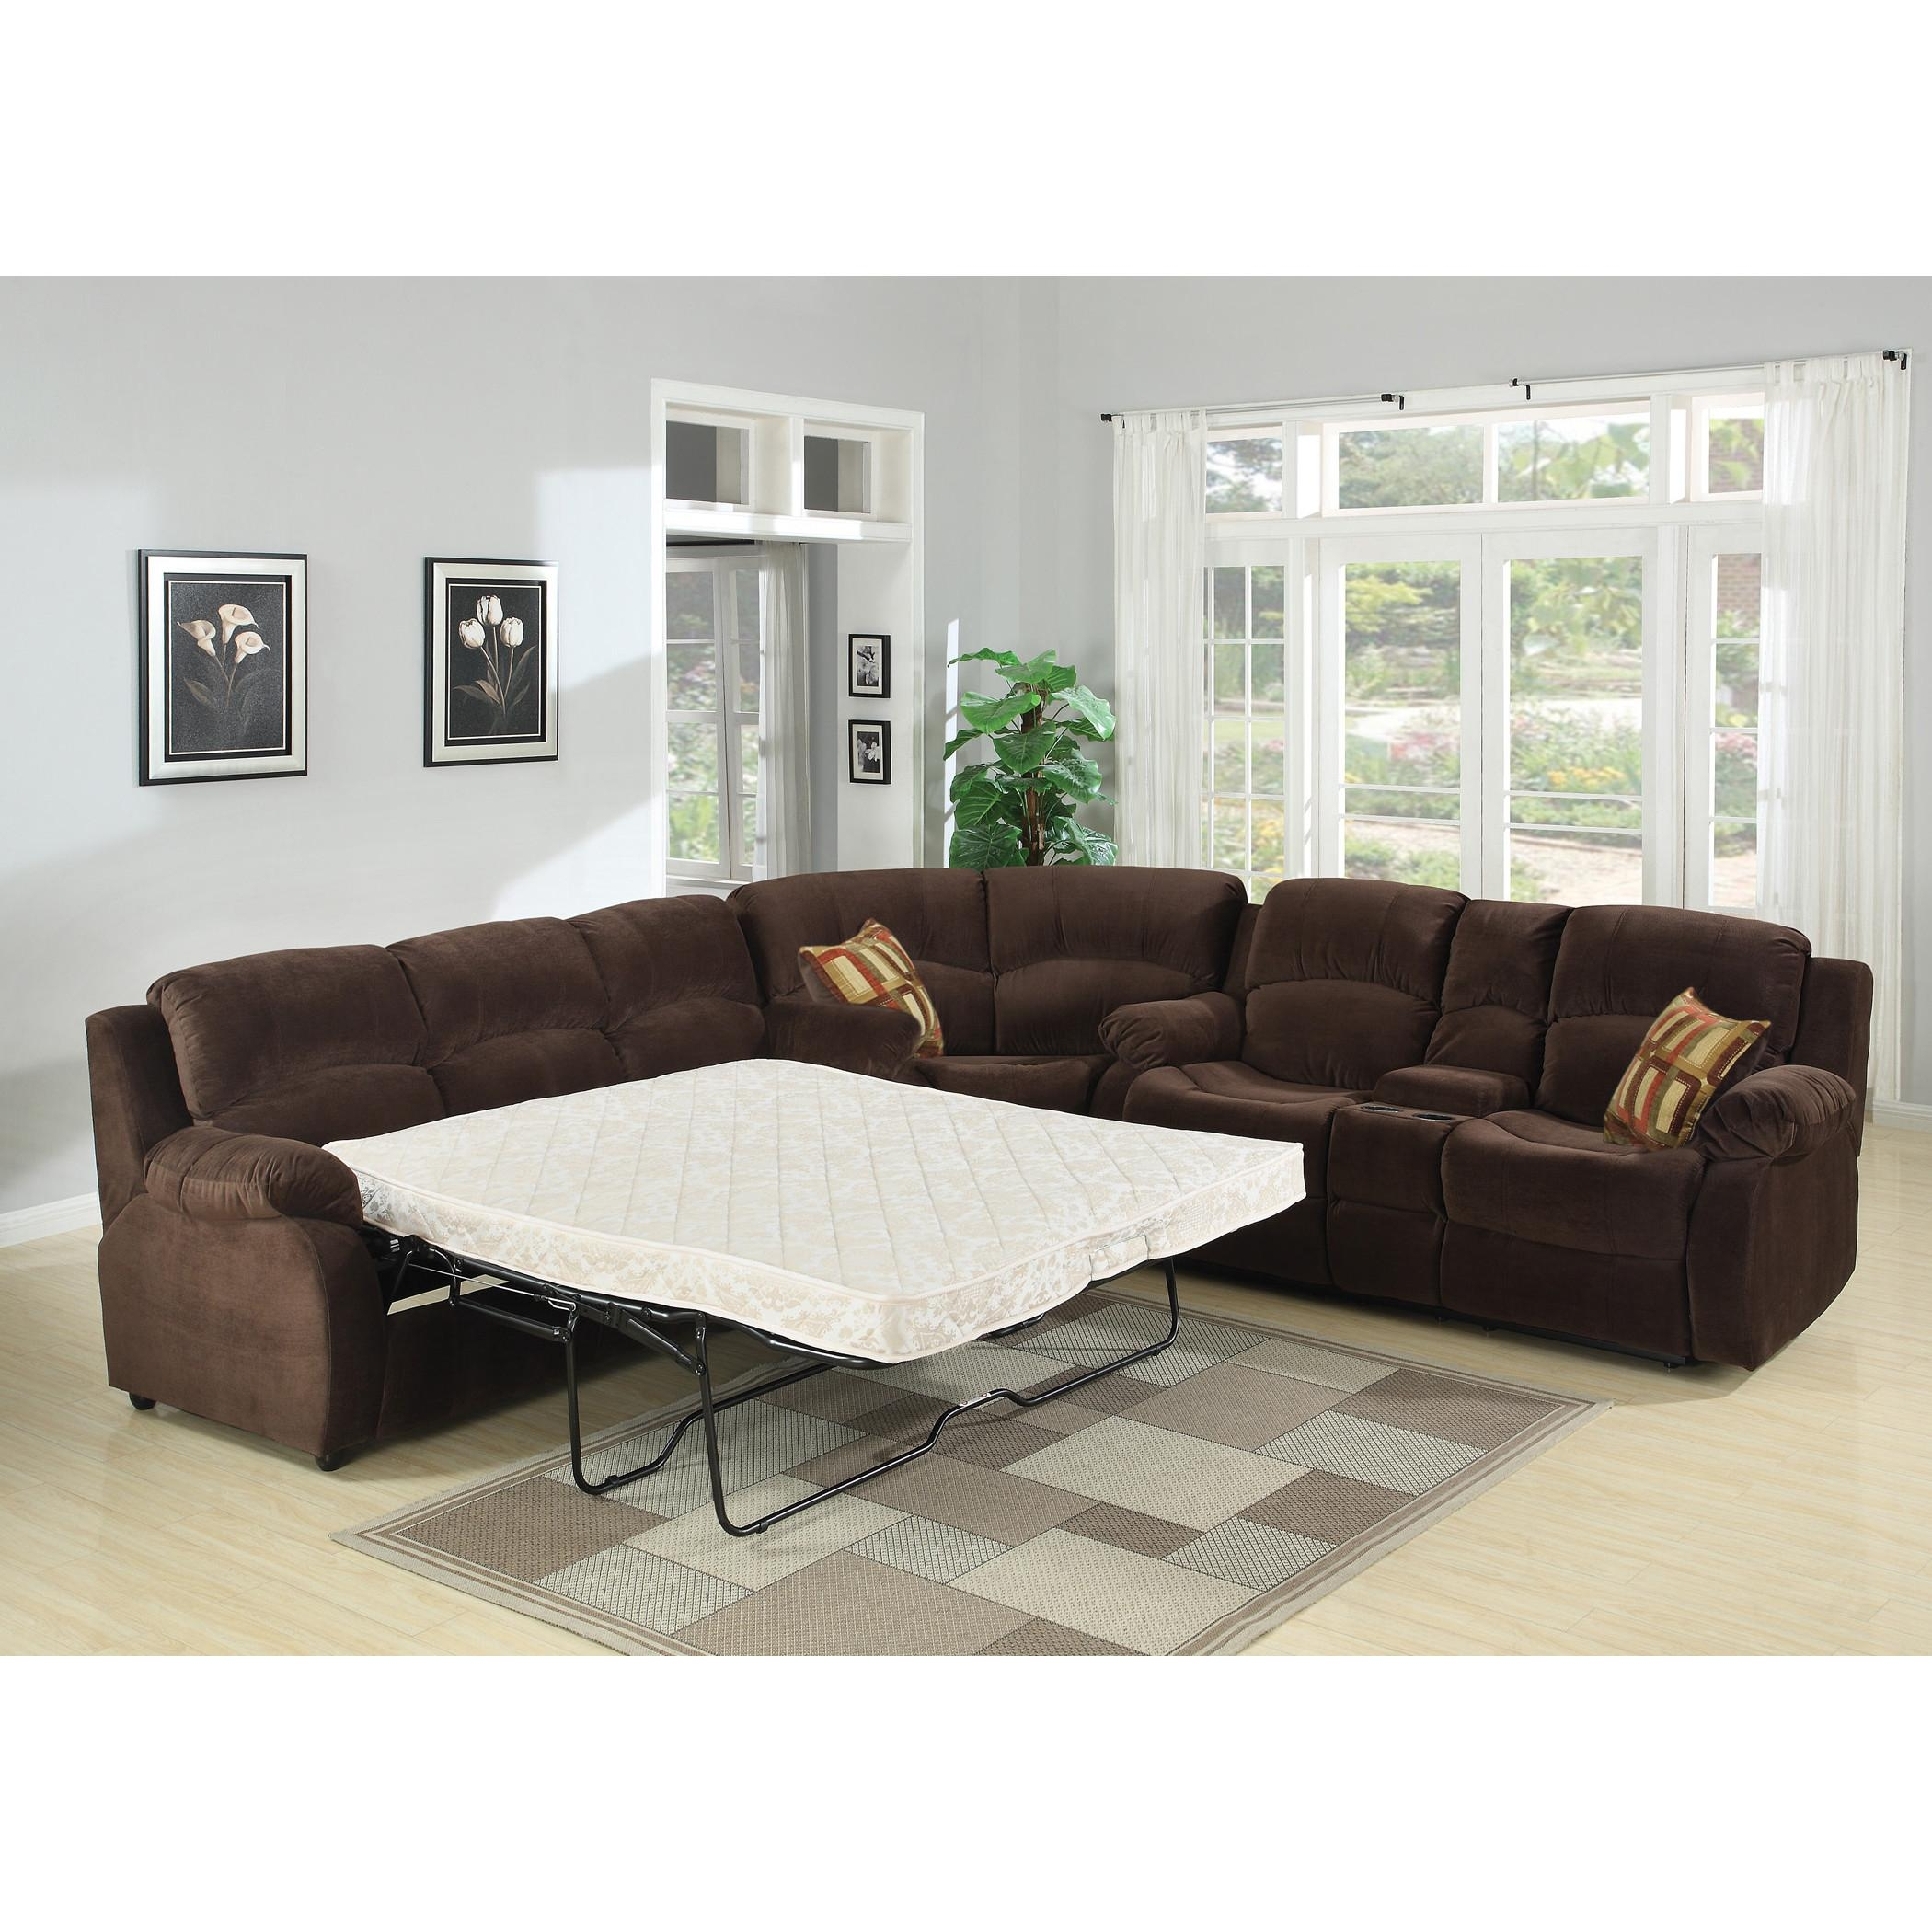 Sofas Center : Vision Sectional Sleeper Sofa Outstanding Photo For Sectional Sleepers (View 9 of 20)